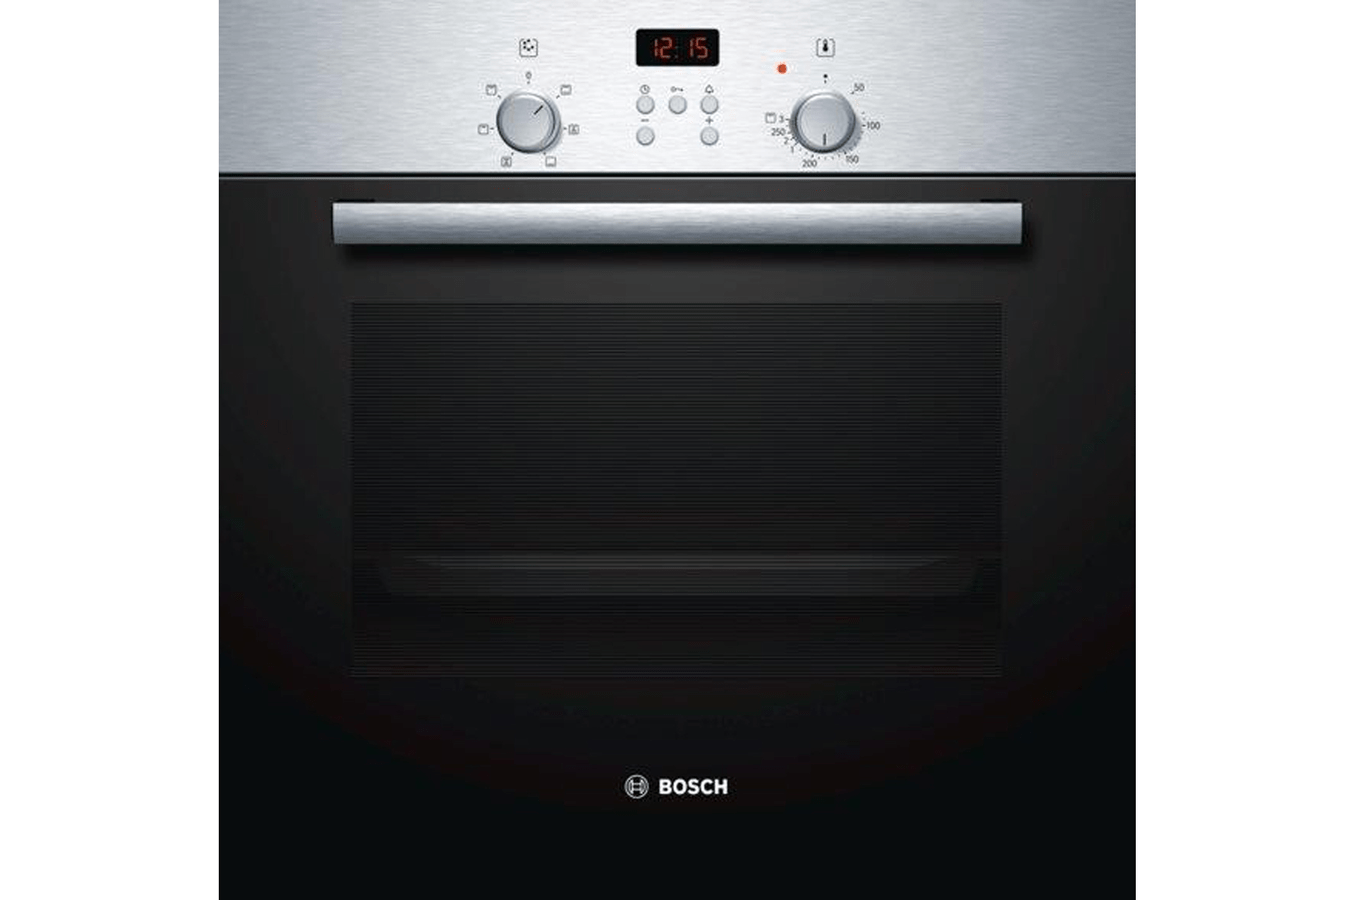 Four Encastrable A+++ Four Encastrable Bosch Hbn231e4 Inox 4083032 Darty